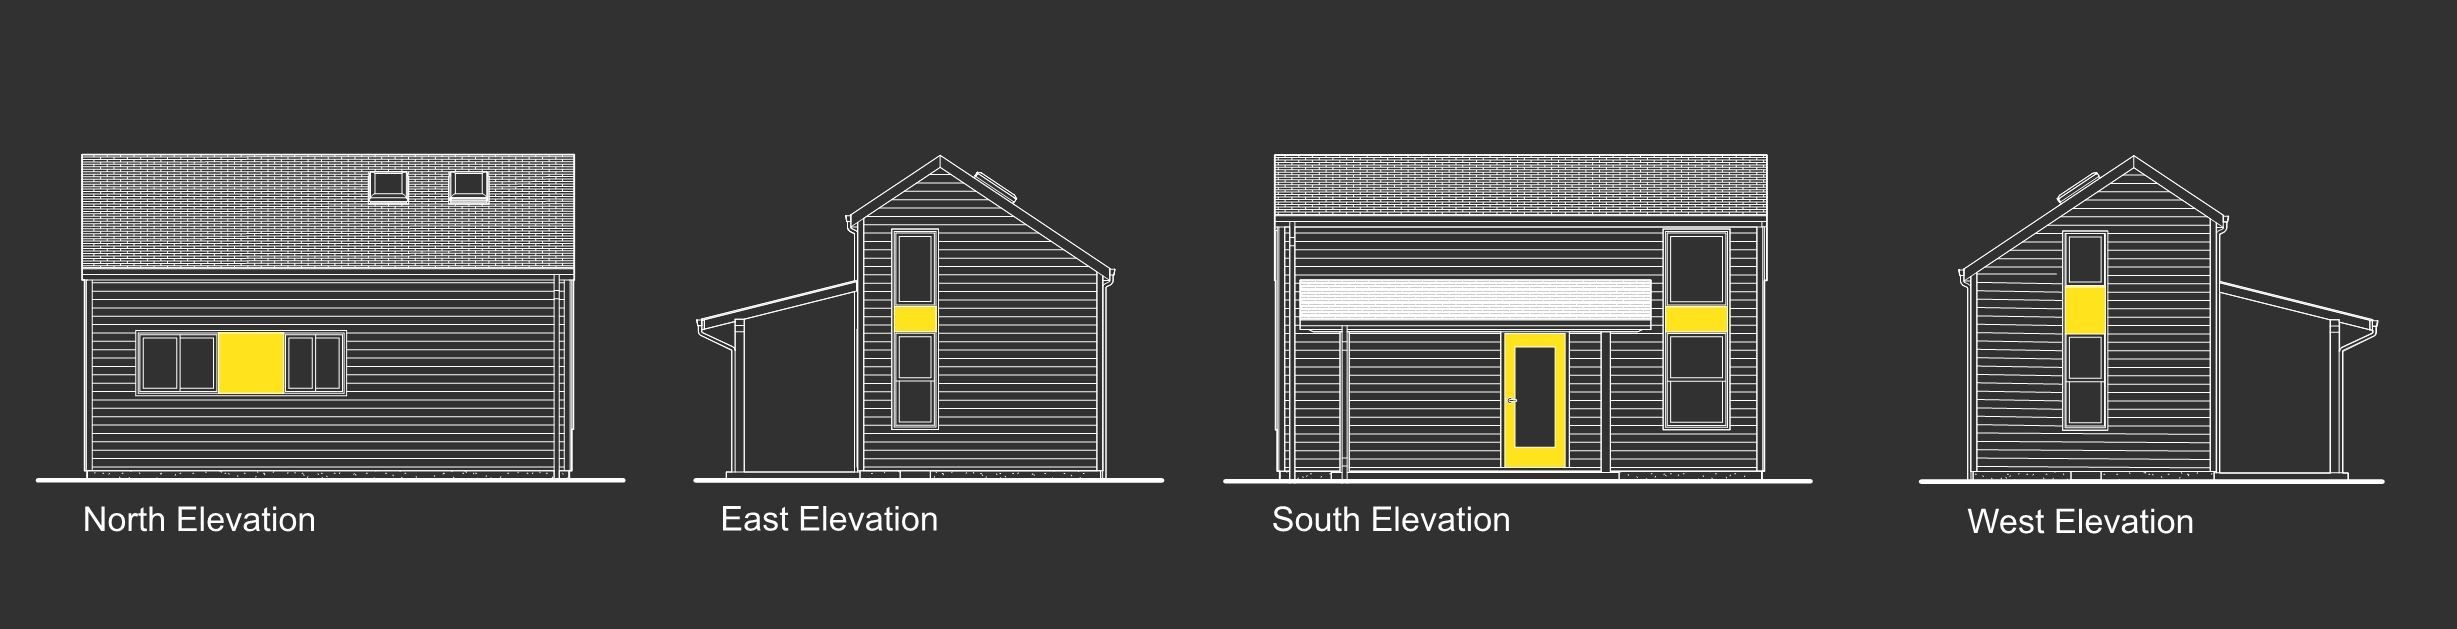 Elevations snapshot.JPG